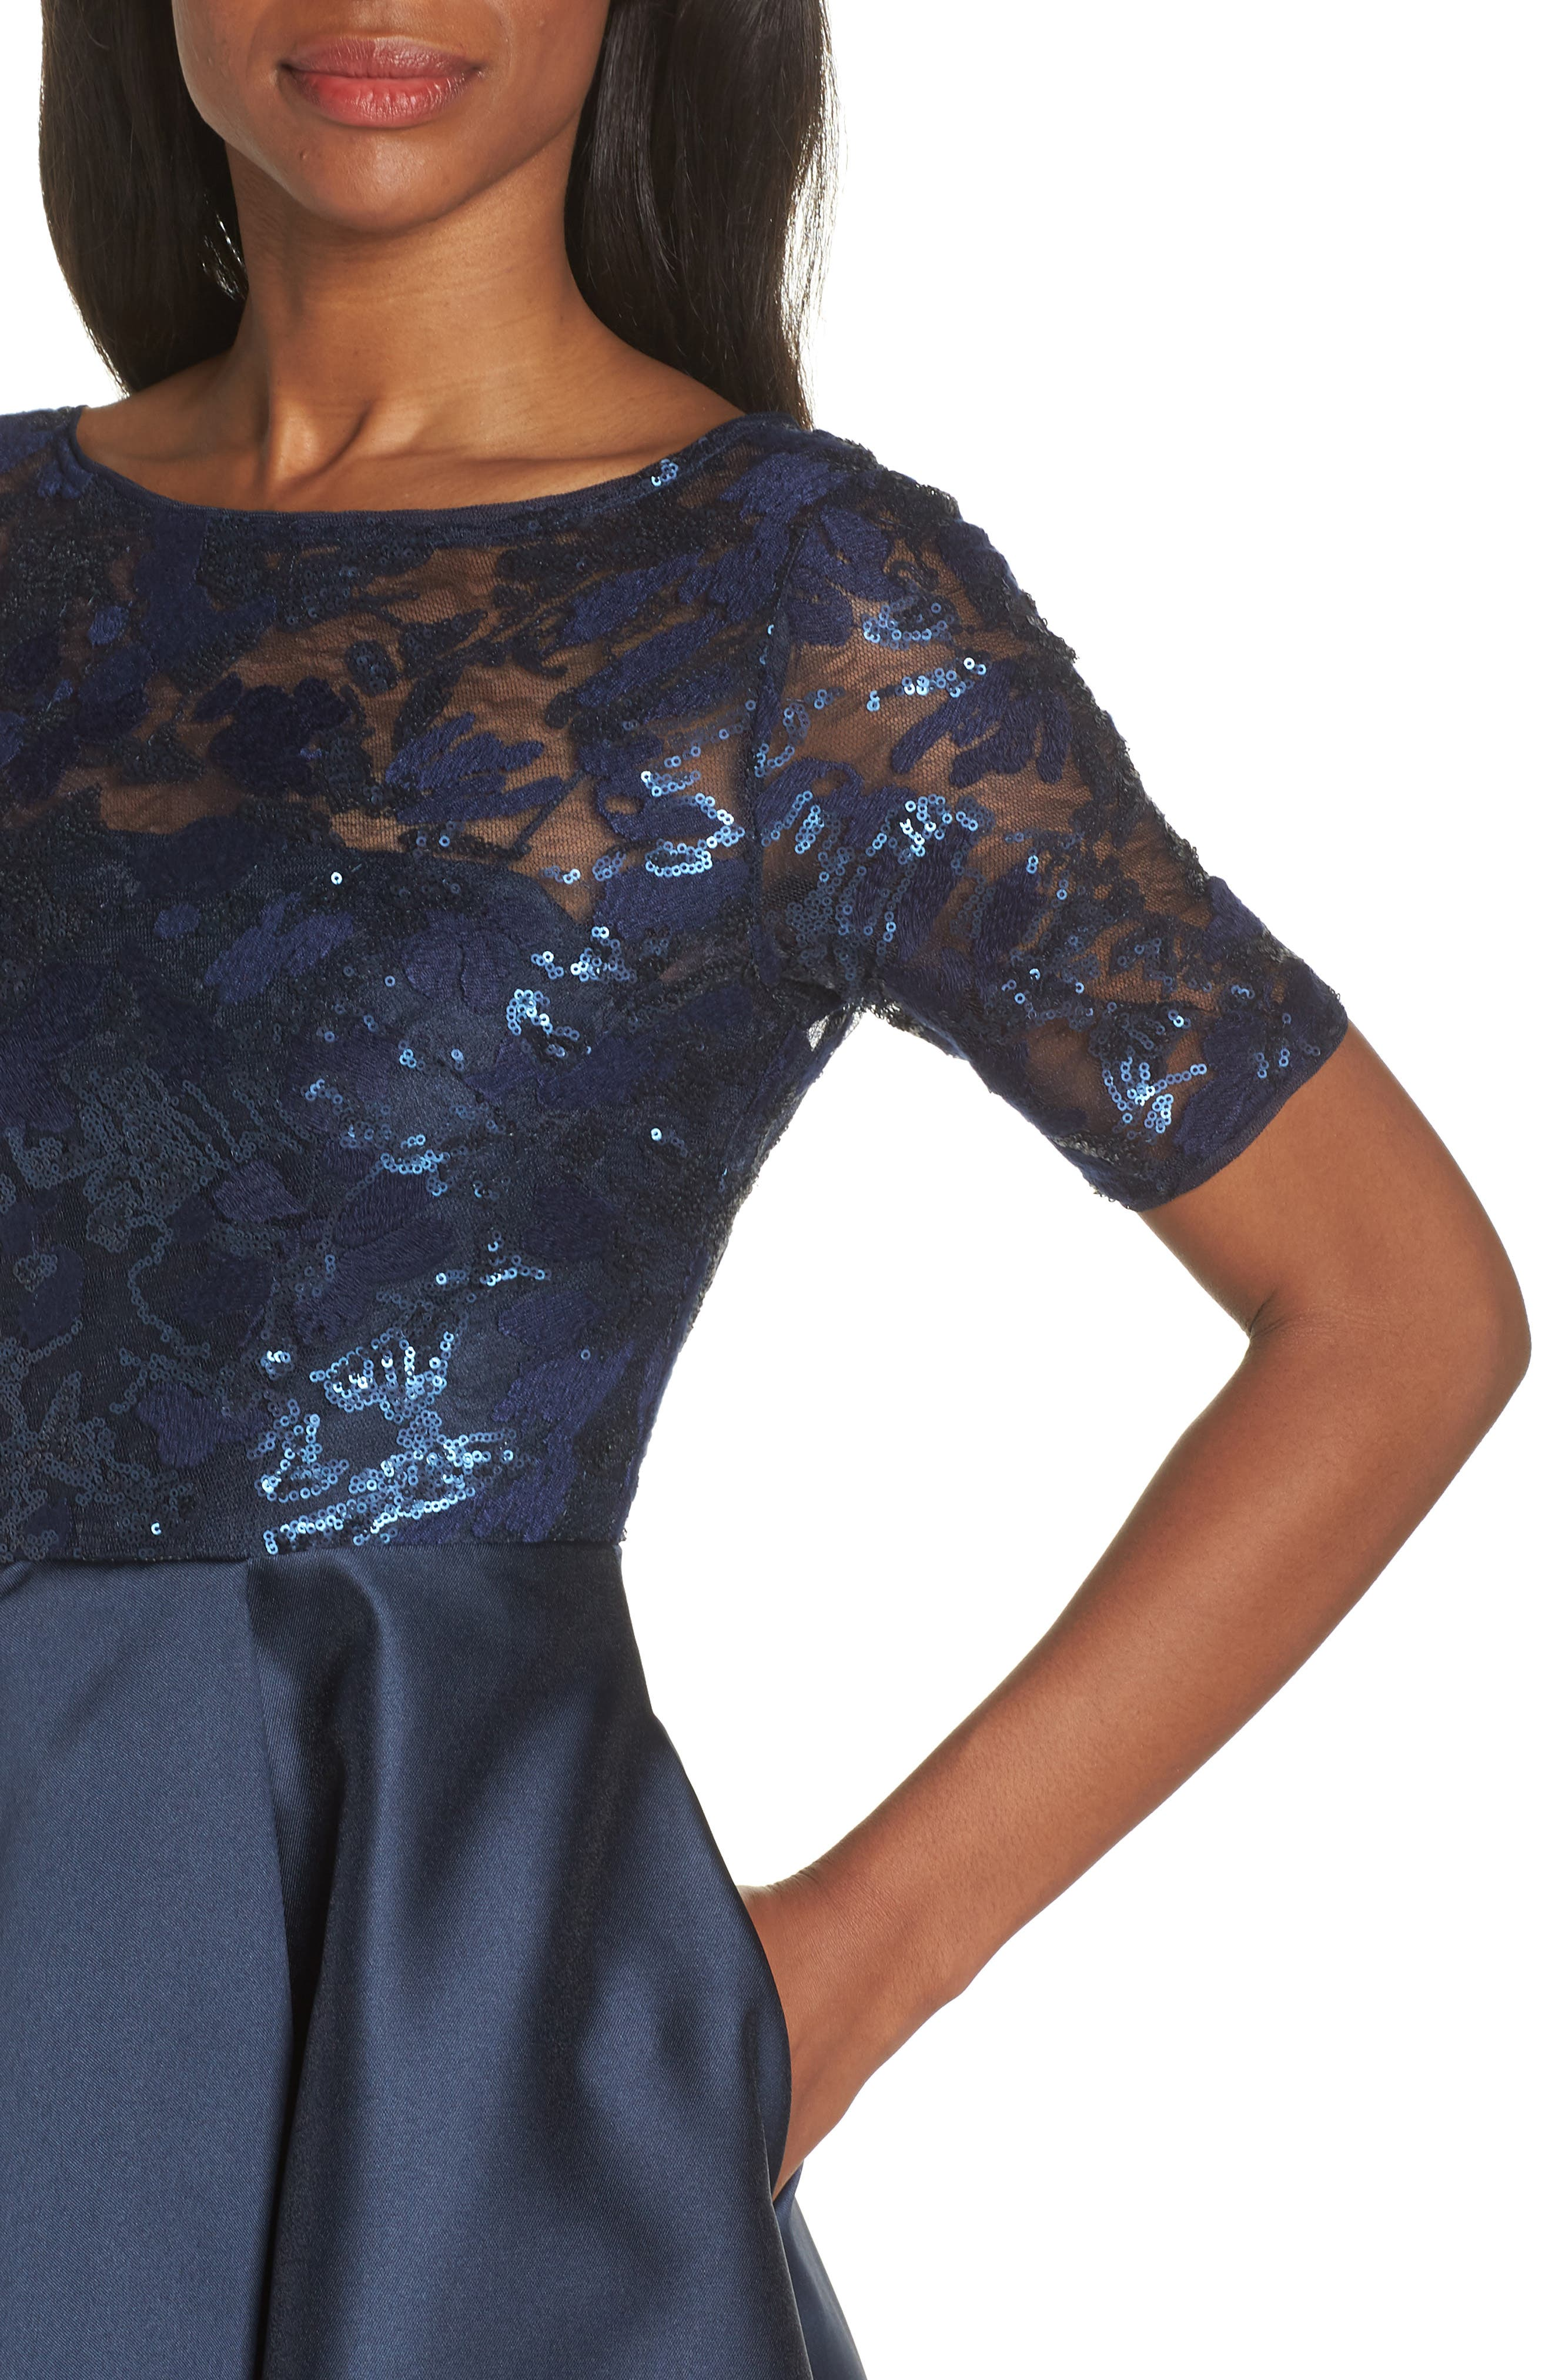 ADRIANNA PAPELL, Sequin Lace High/Low Evening Dress, Alternate thumbnail 5, color, MIDNIGHT